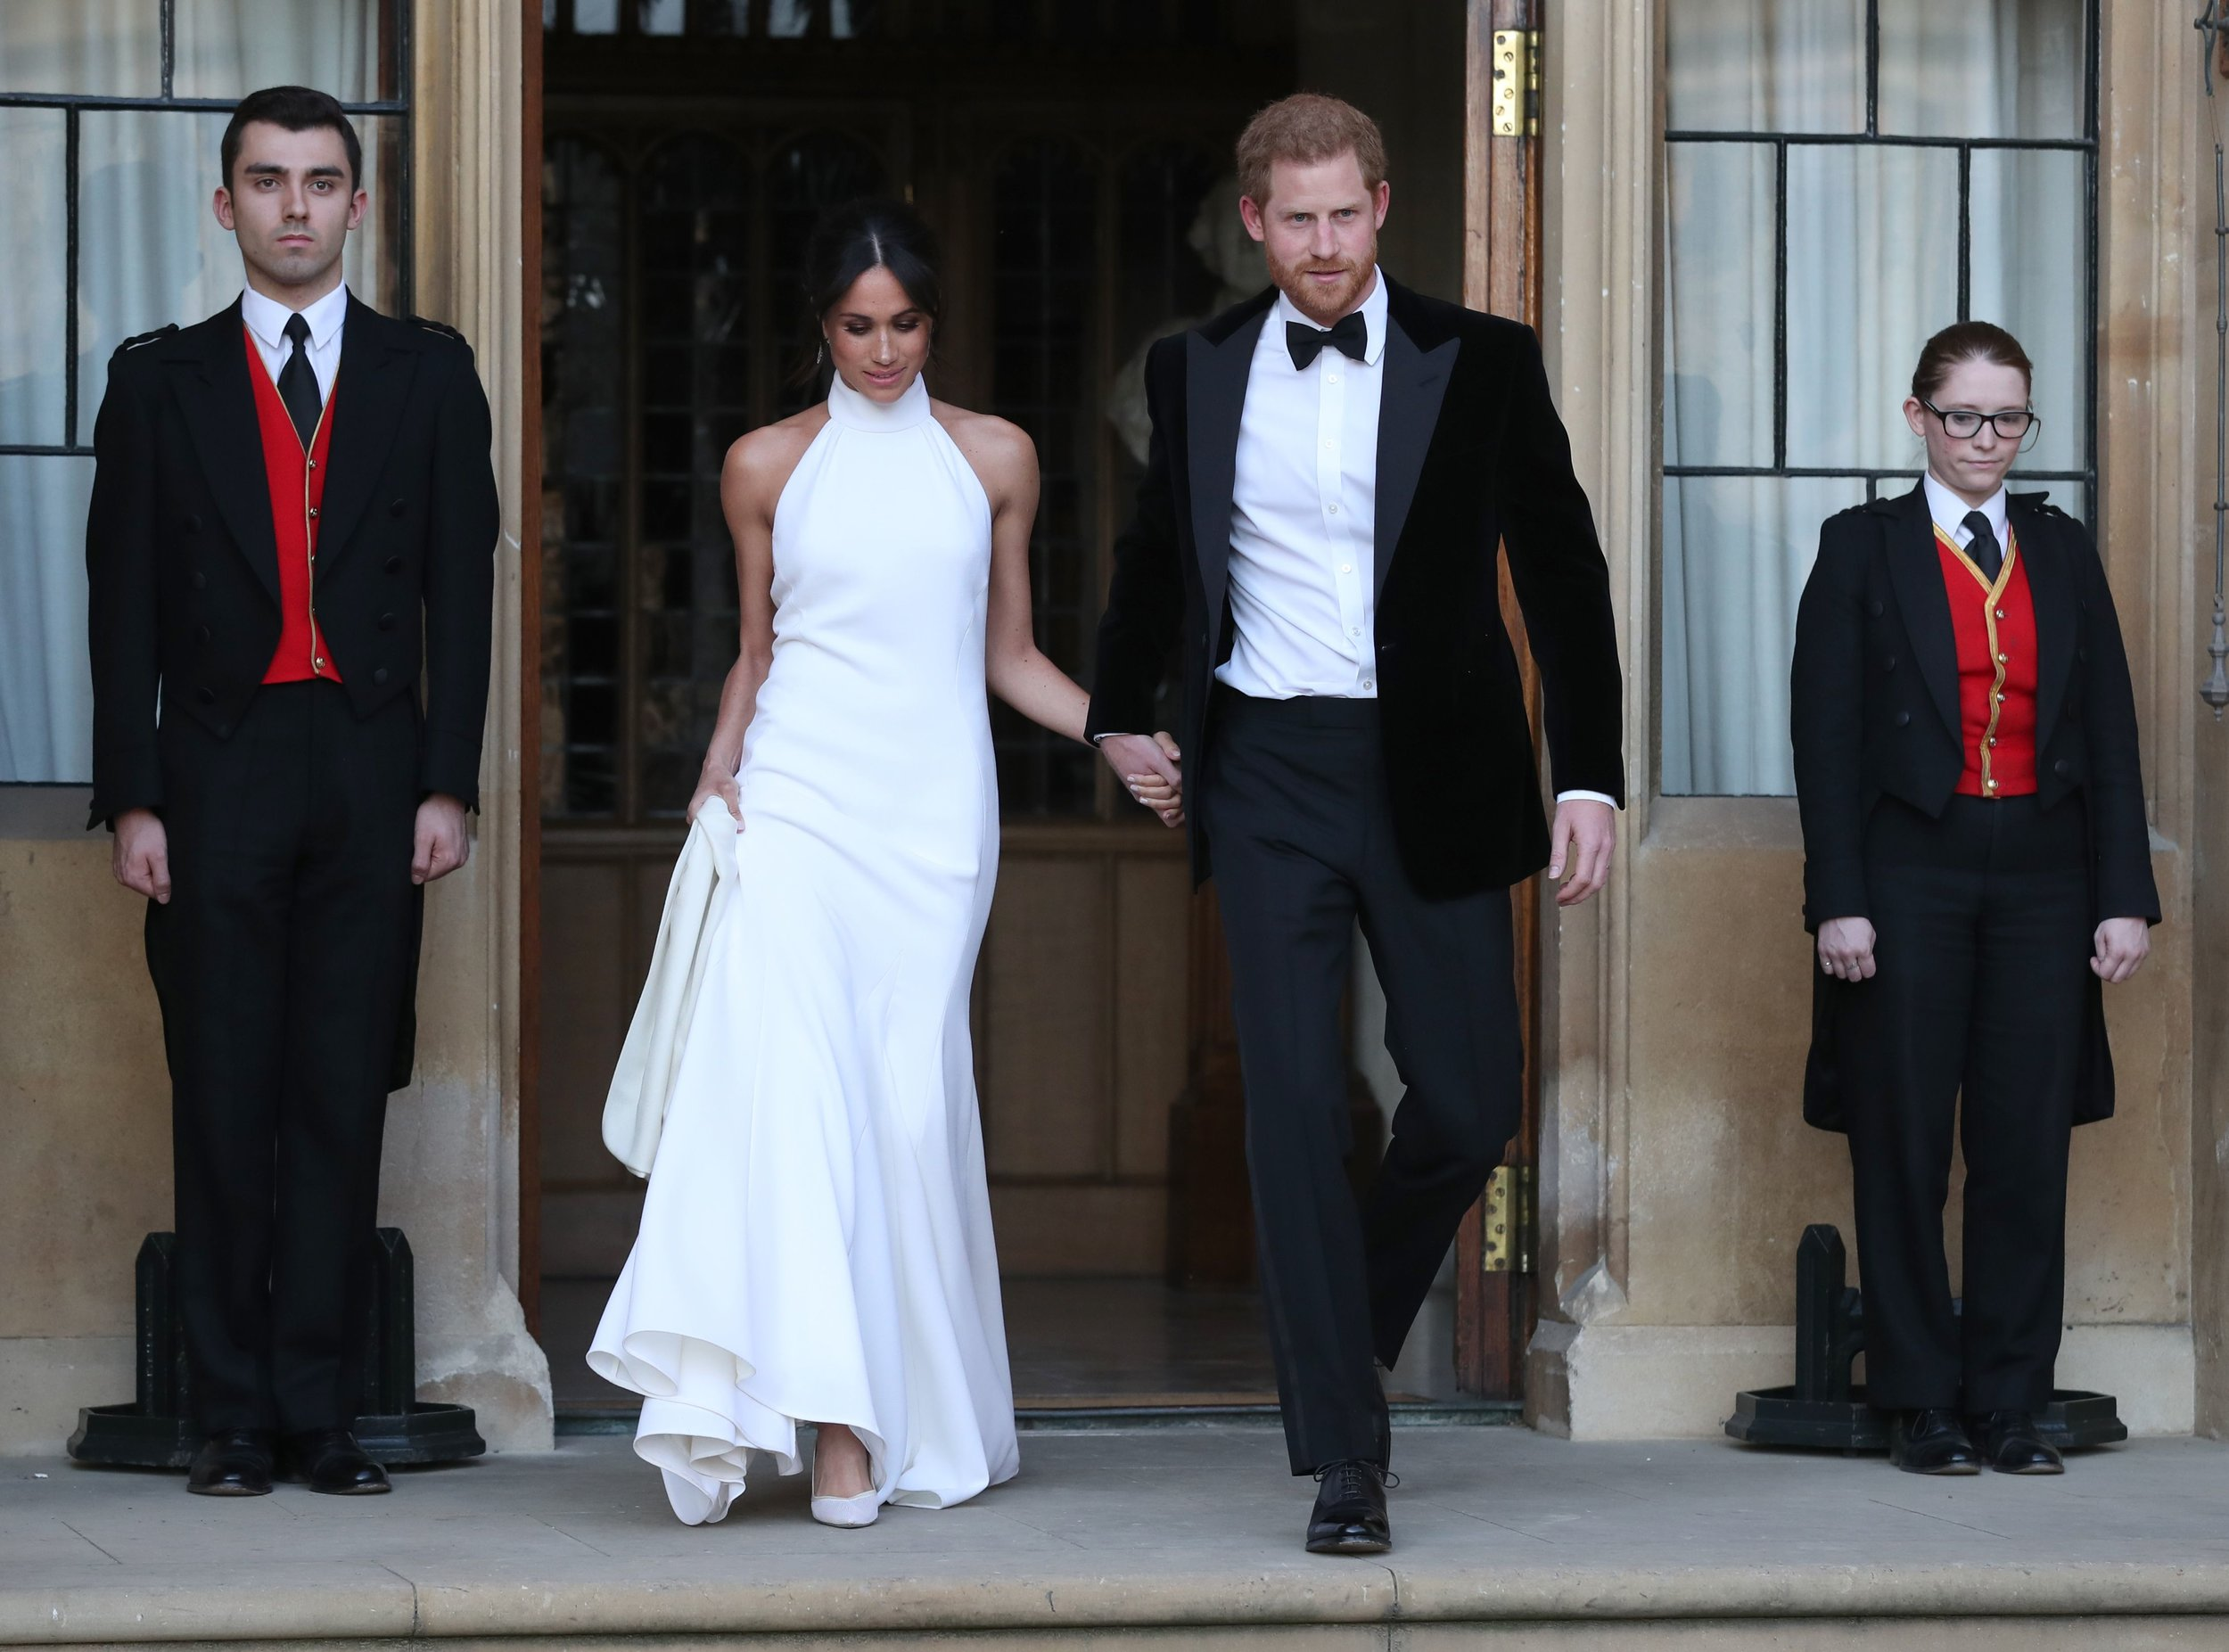 After the ceremony, the Duke and Duchess changed, she opting for a modern halter-style Stella McCartney dress